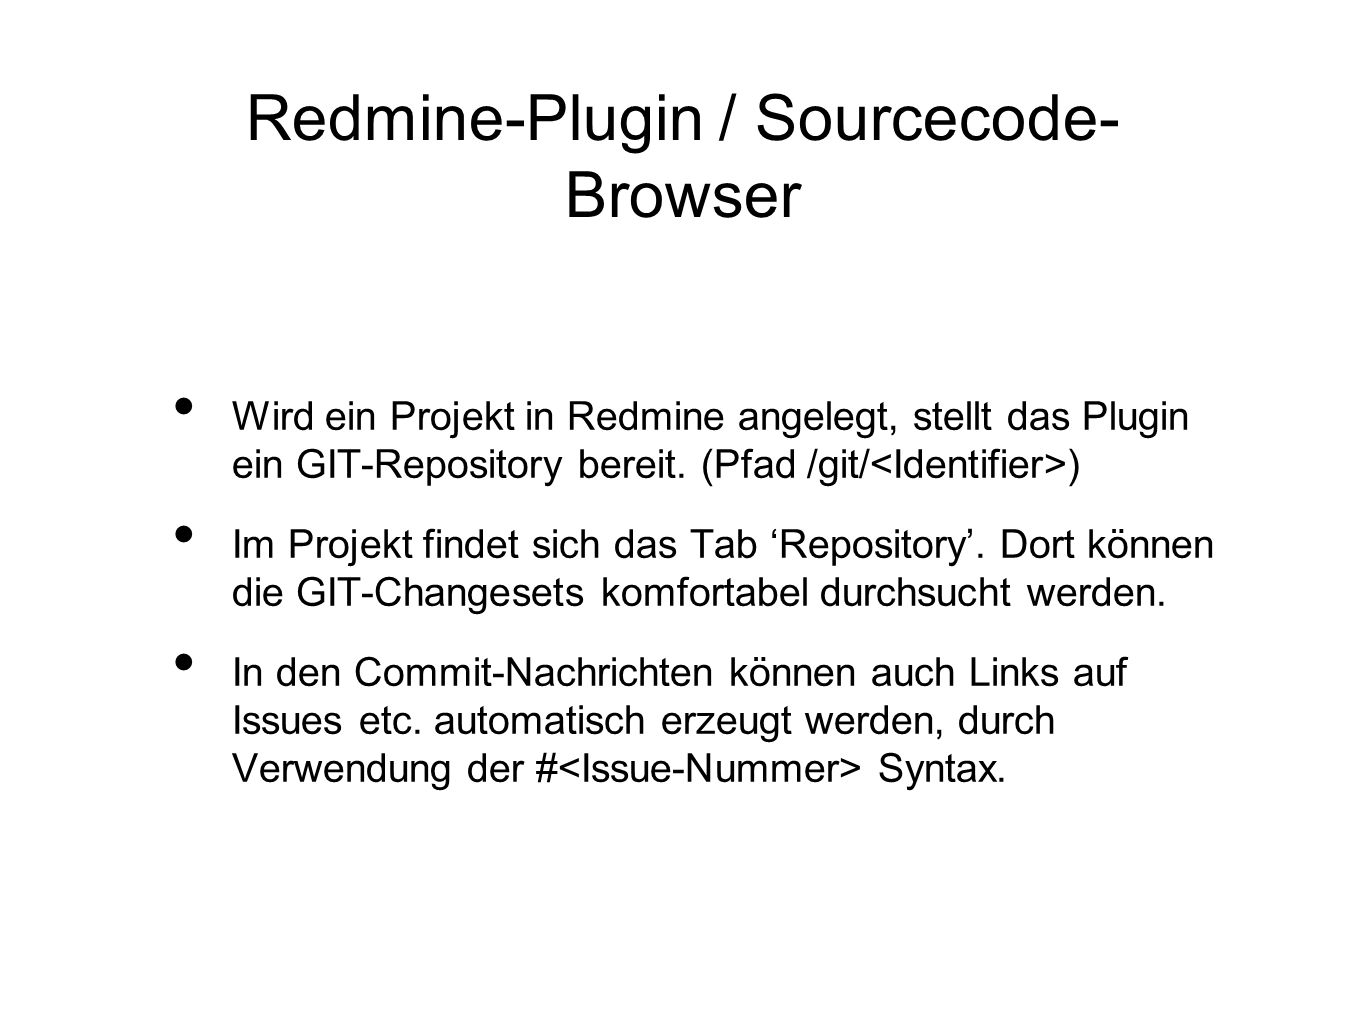 Redmine-Plugin / Sourcecode-Browser